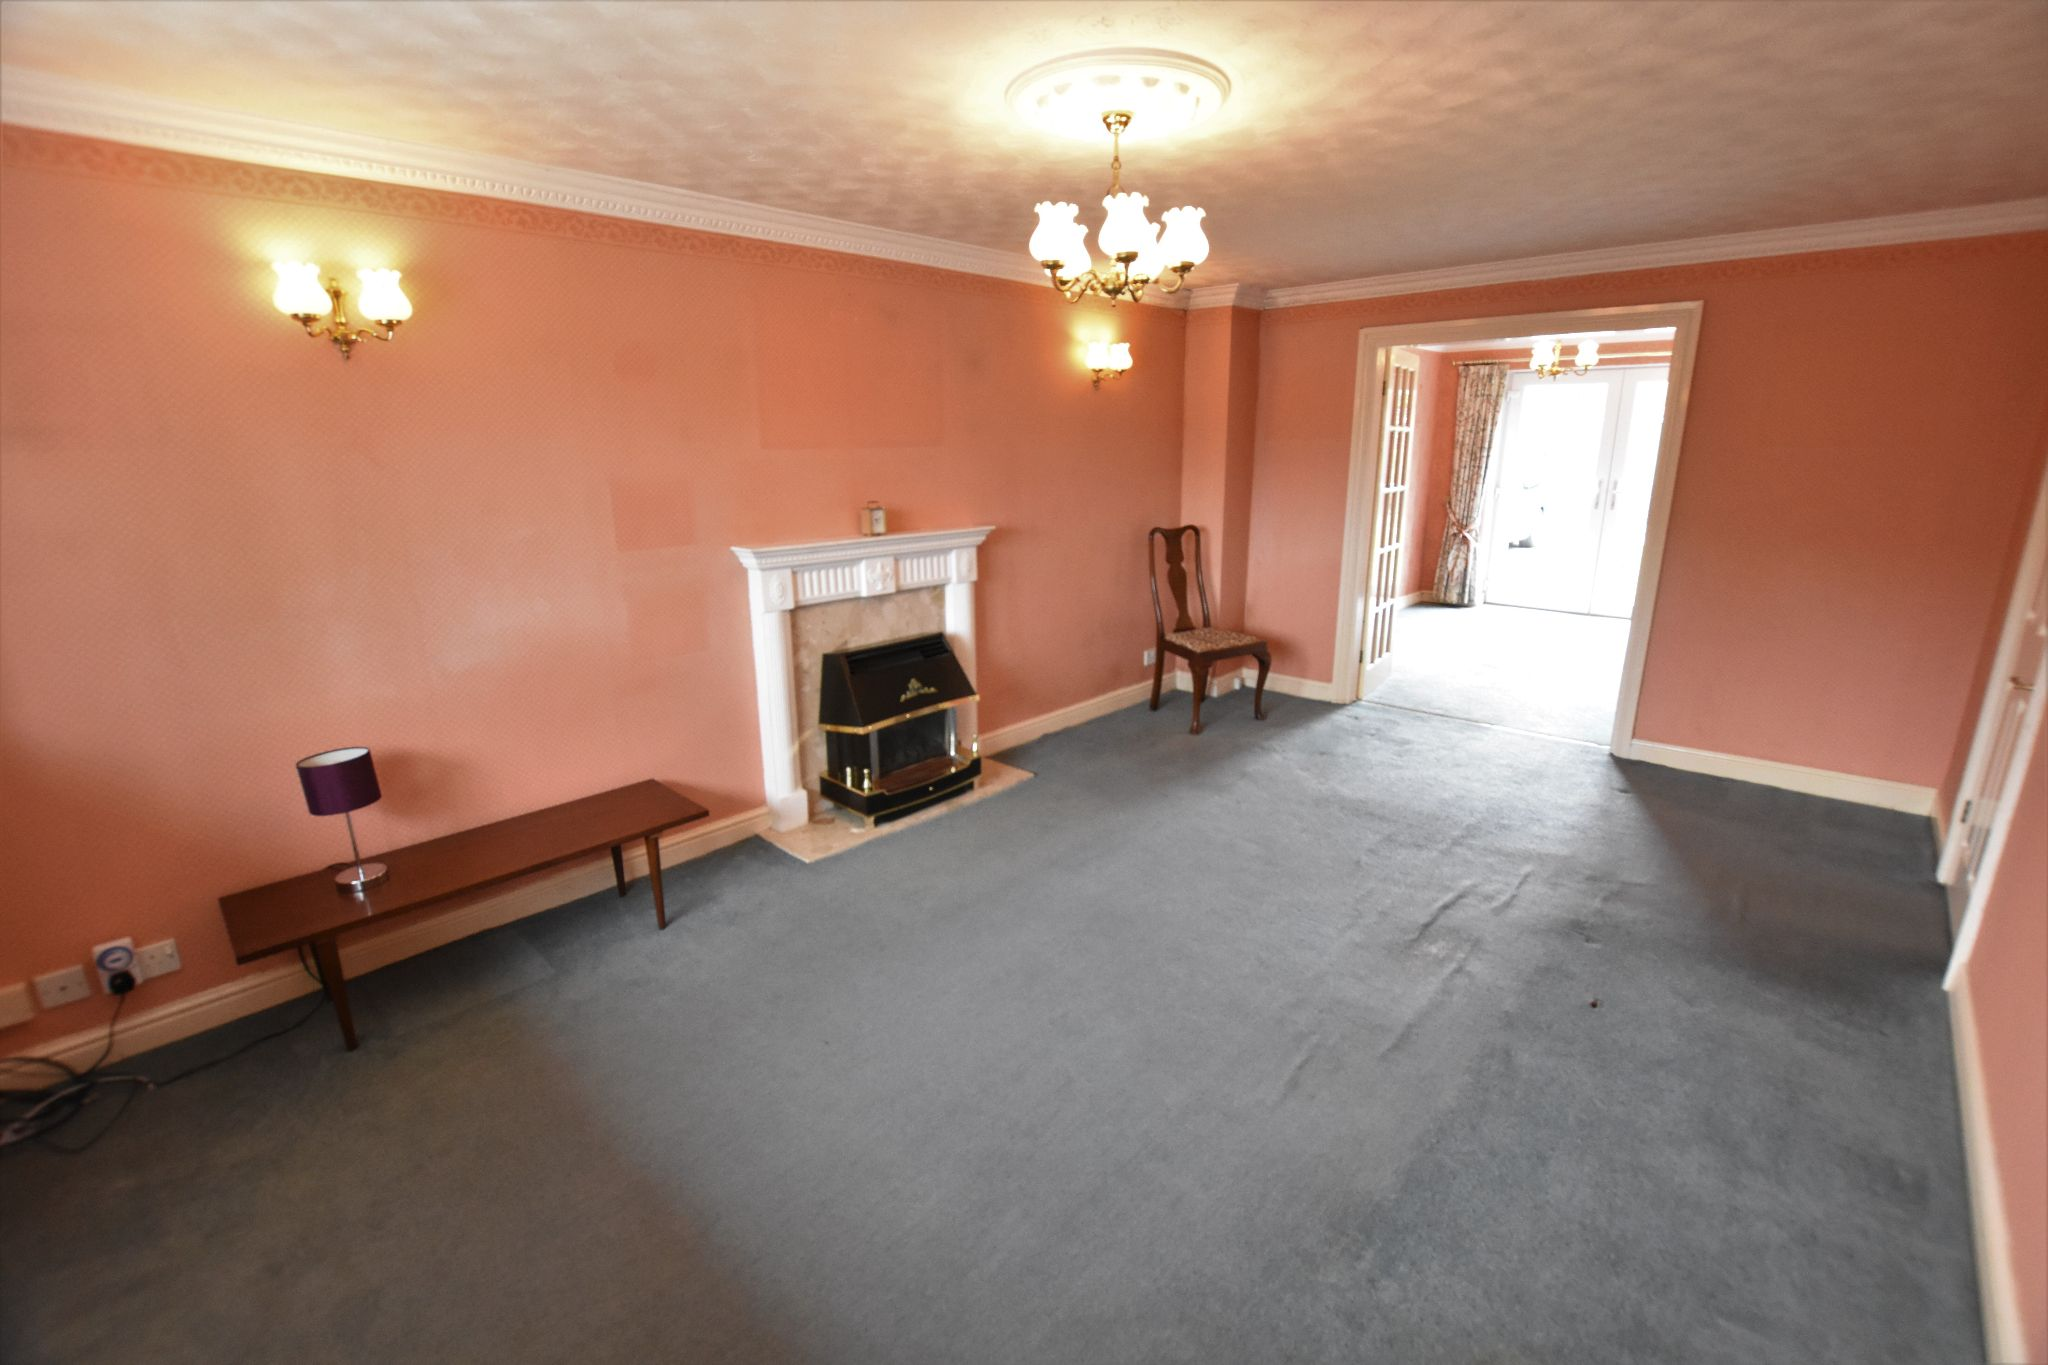 4 bedroom detached house Sold STC in Preston - Lounge